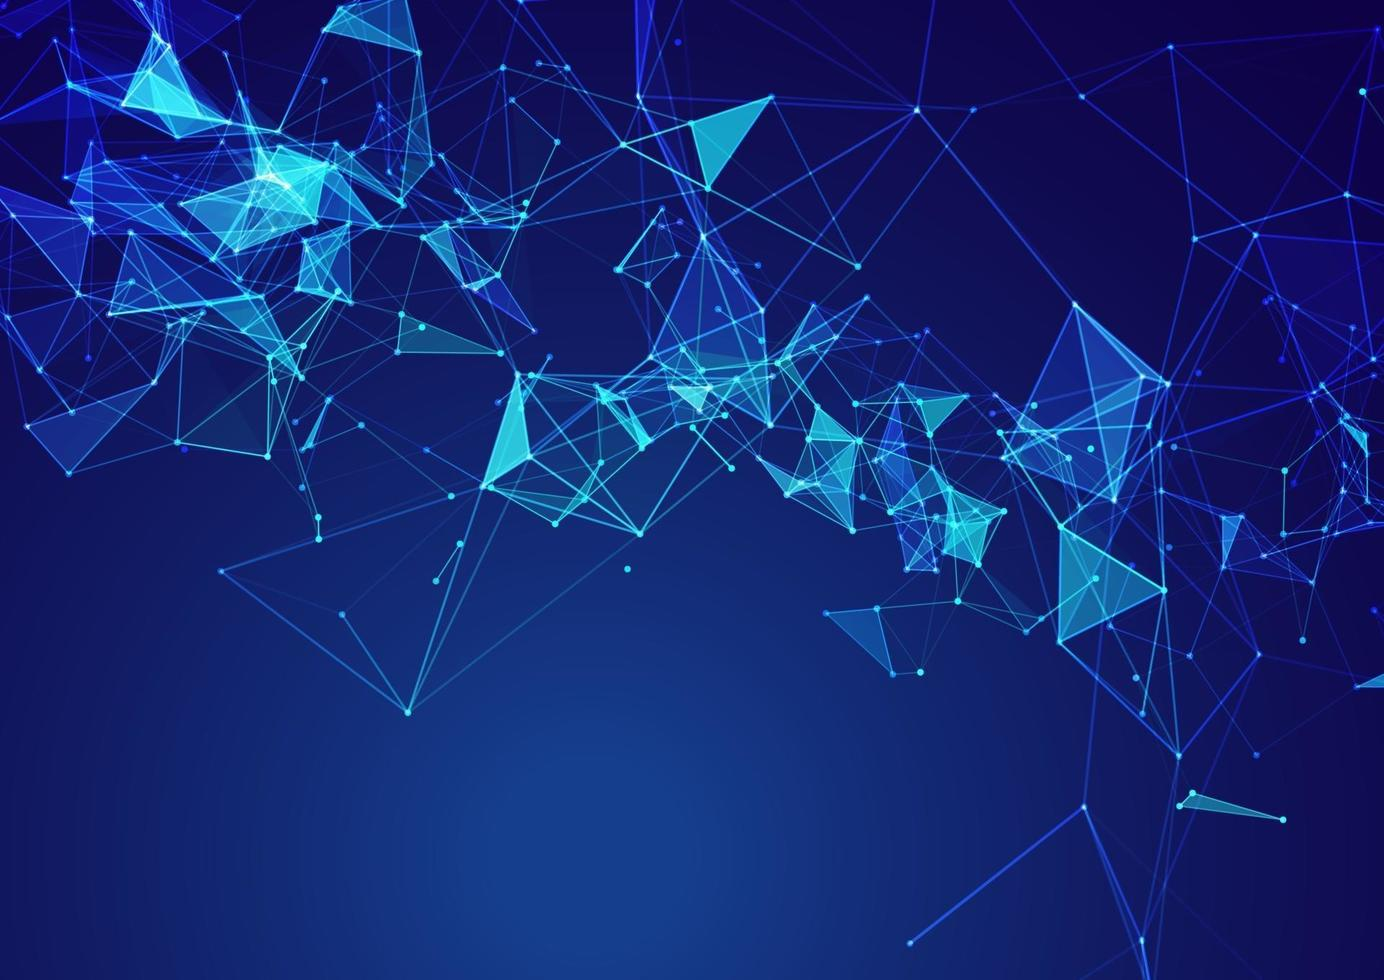 low poly network communications background vector